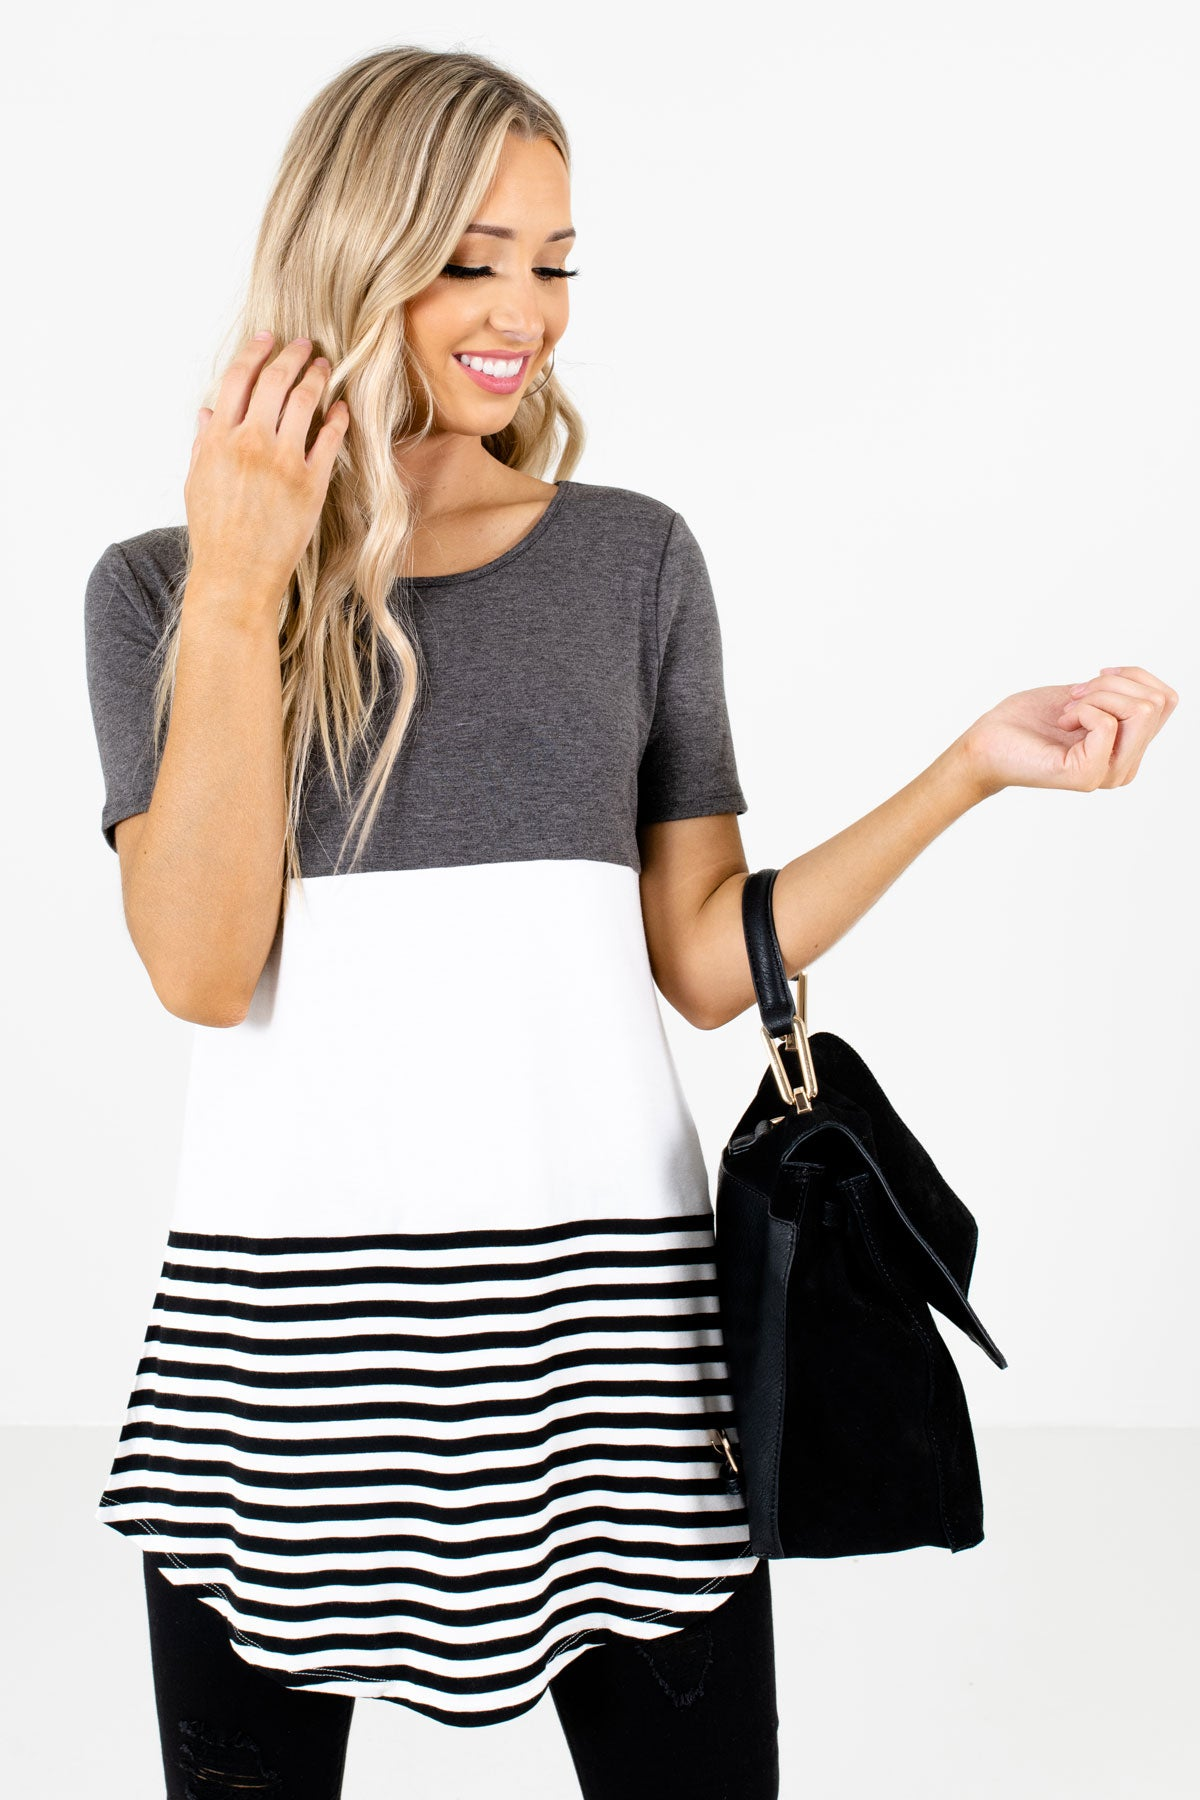 Gray White and Black Color Block Patterned Boutique Tops for Women